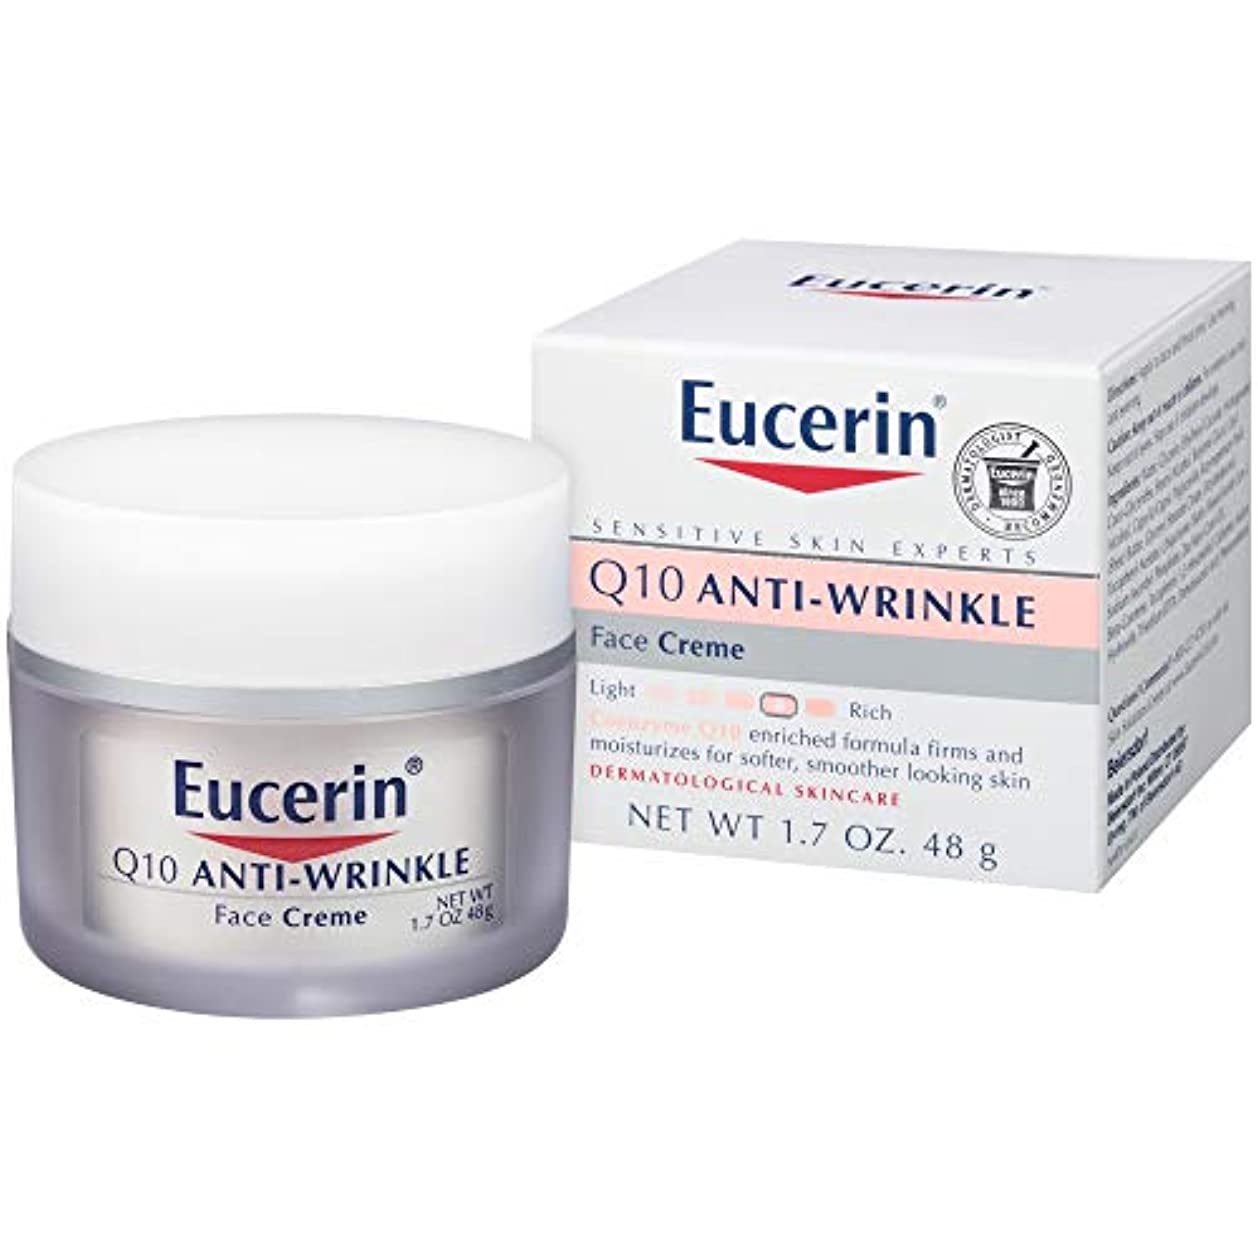 クレアアボートトークEucerin Sensitive Facial Skin Q10 Anti-Wrinkle Sensitive Skin Creme 48g (並行輸入品)